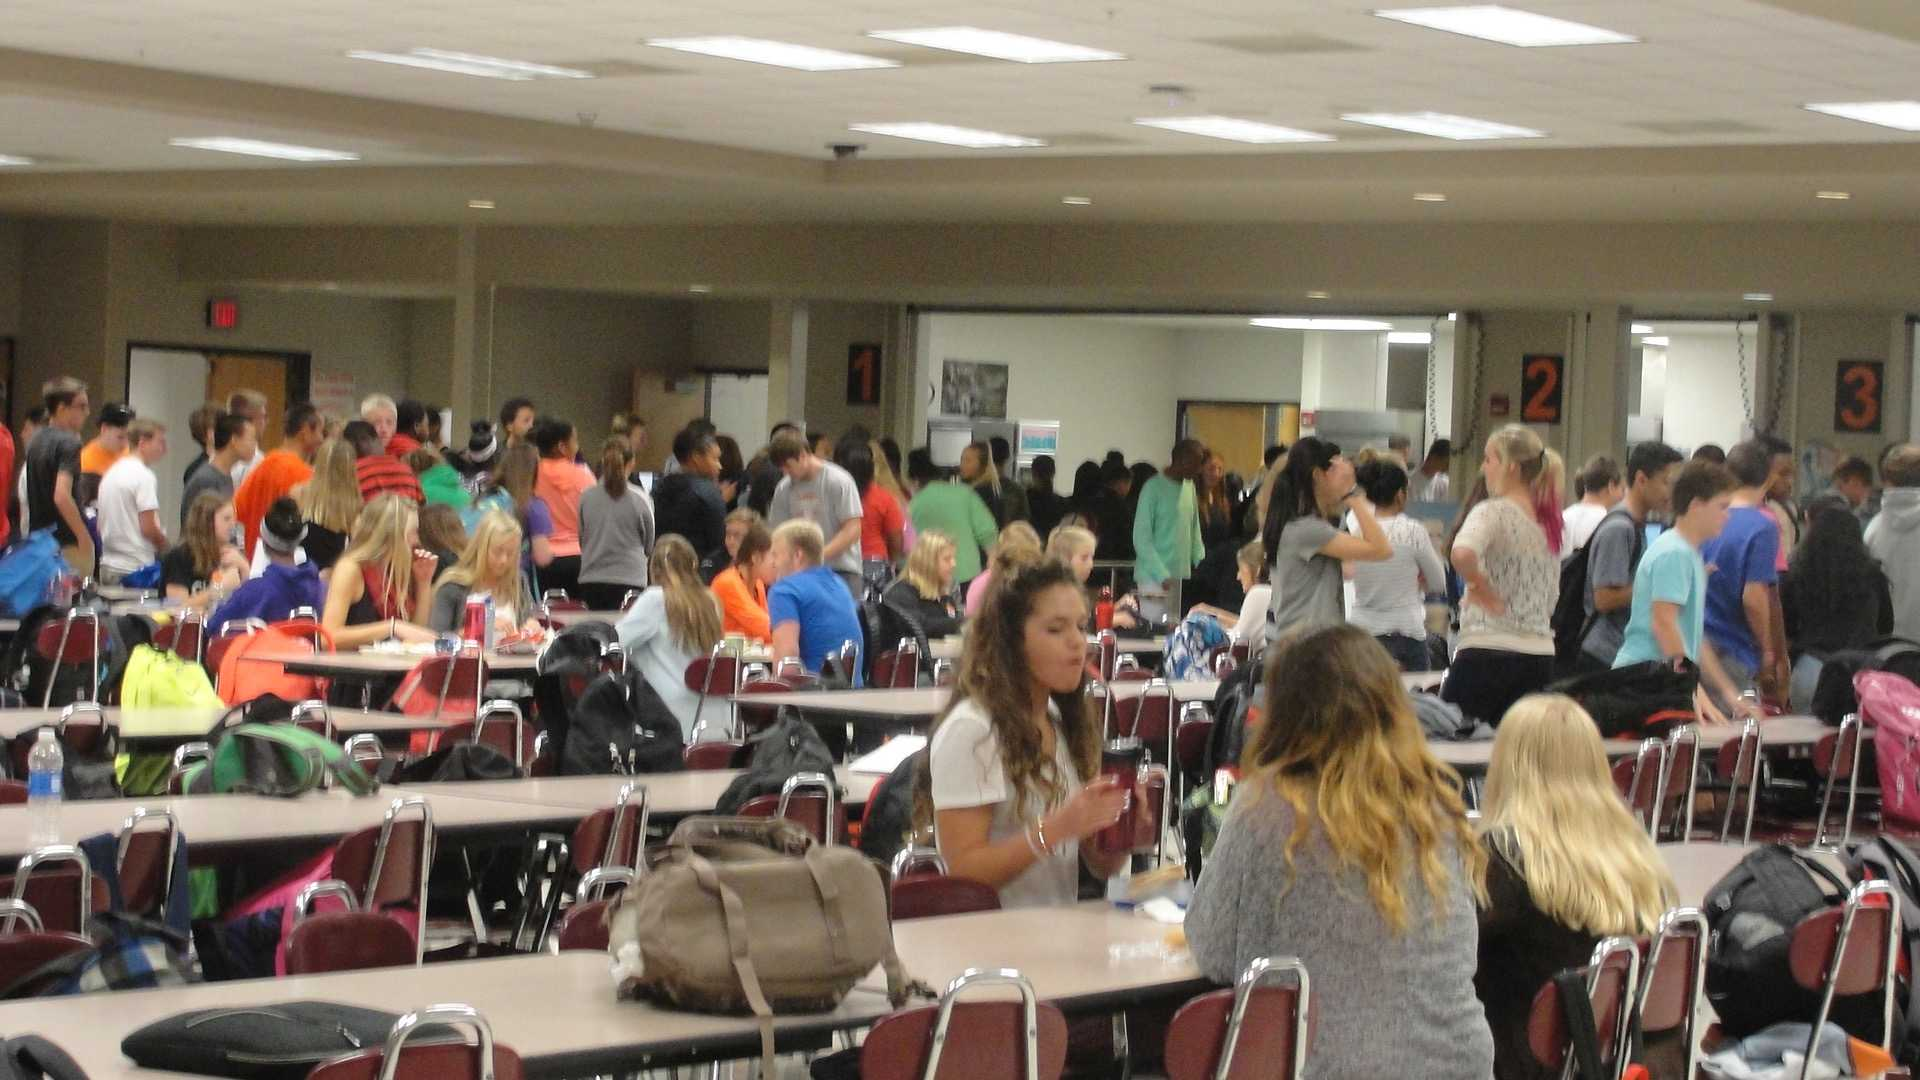 Students line up for lunch. (Sept. 21-25)